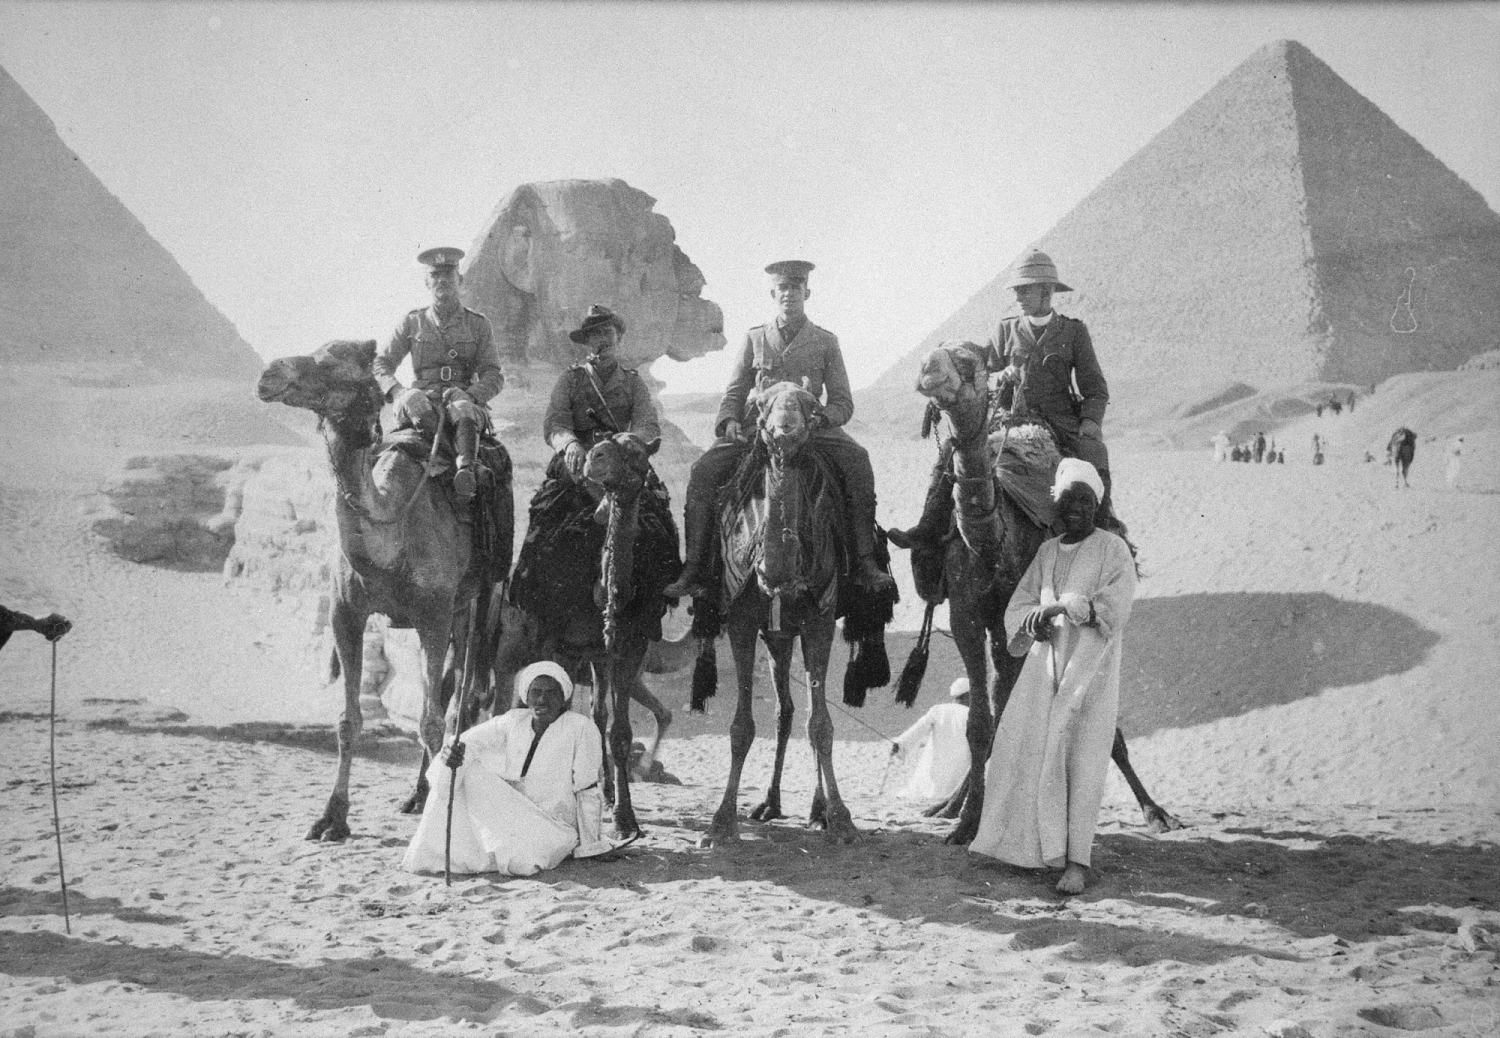 Four men on camels.